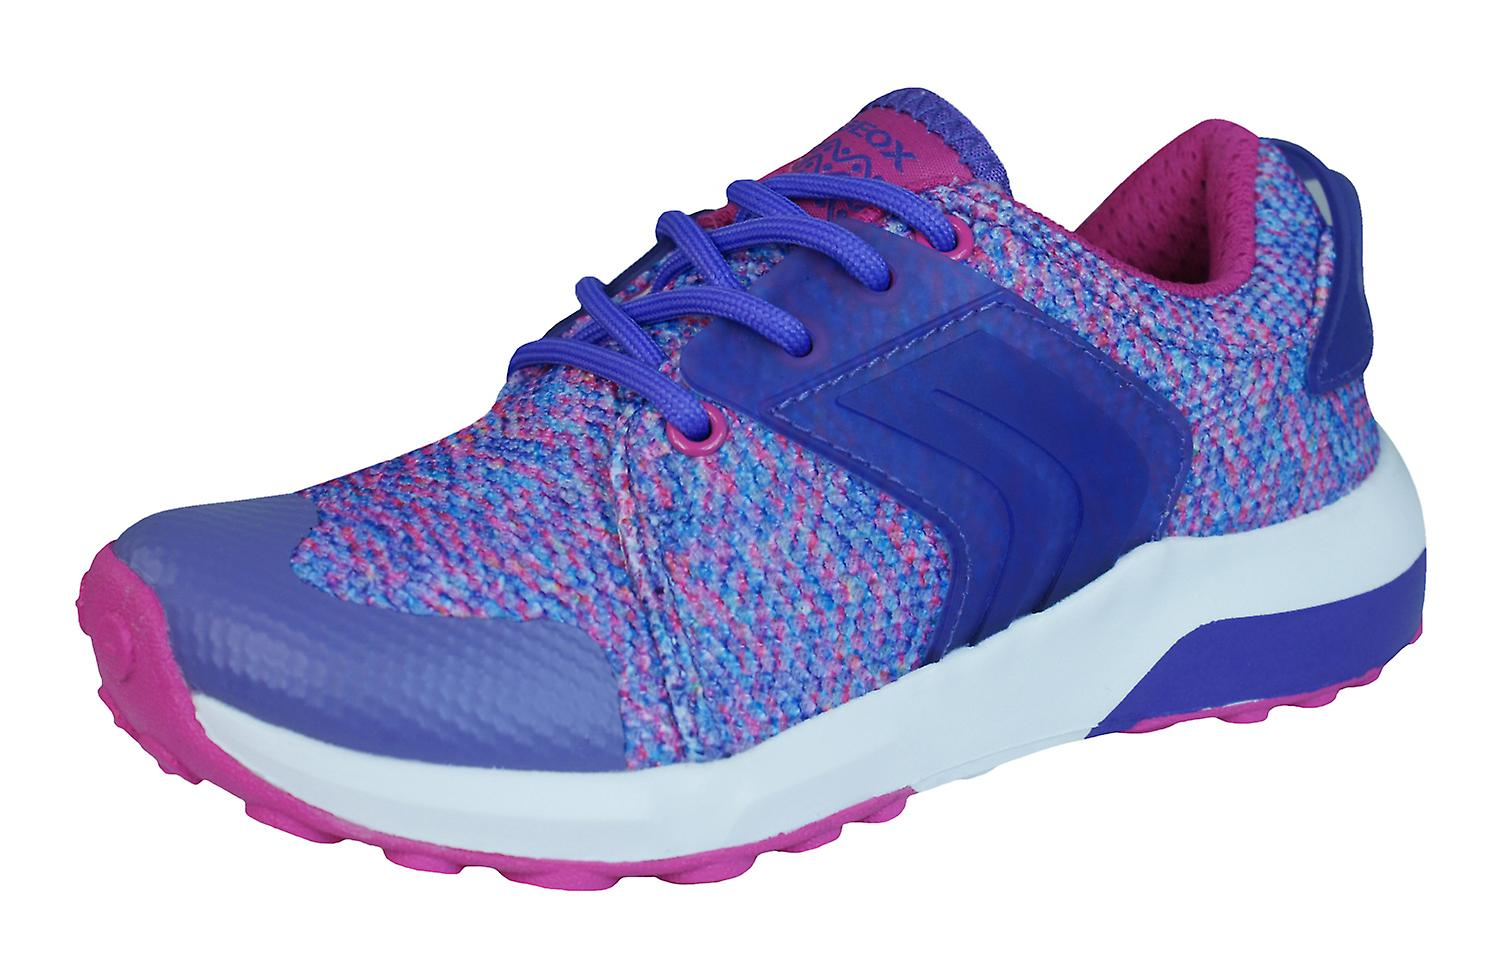 Geox J Asteroid G Girls Trainers   chaussures - Fuchsia rose